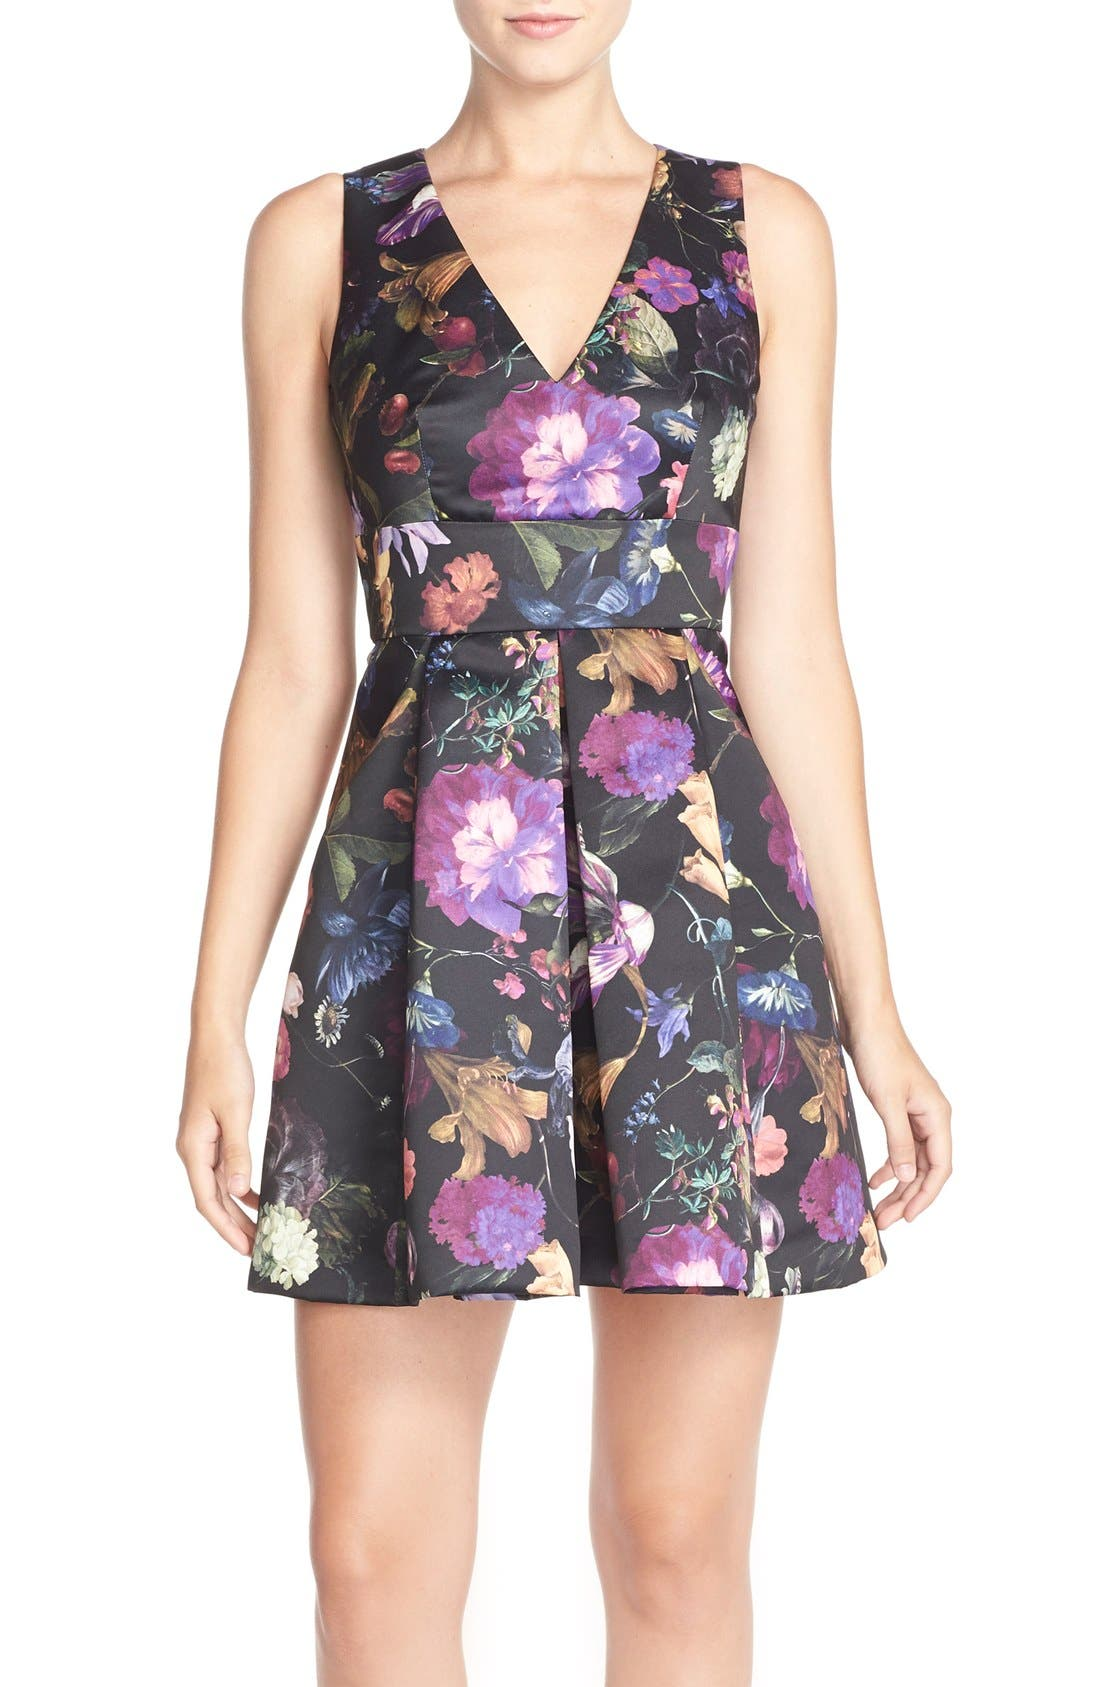 Alternate Image 1 Selected - Cythia Rowley 'Winter' Floral Print Woven Fit & Flare Dress